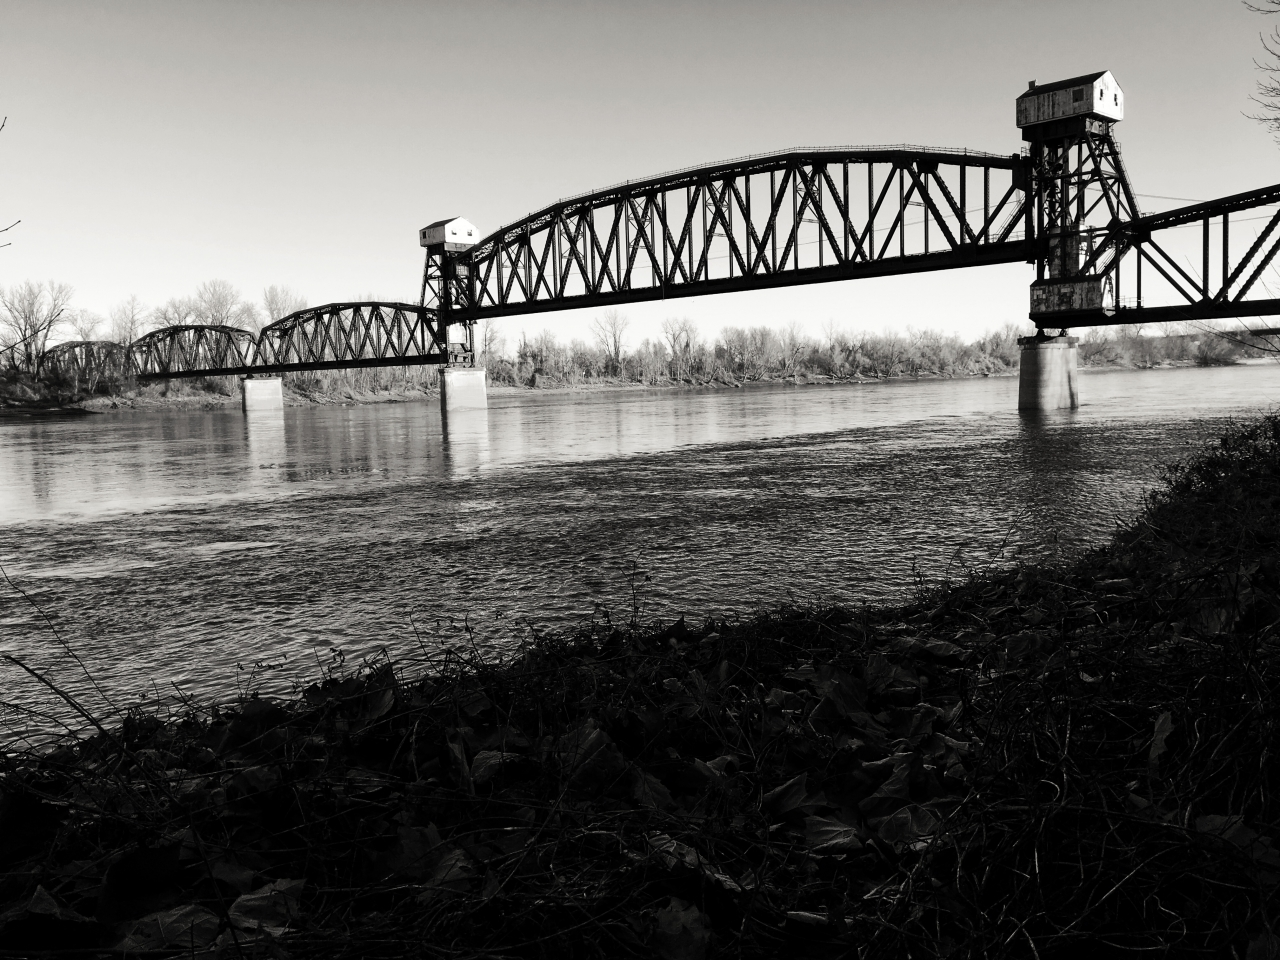 Bridge now part of Katy Trail but railroad company would like to dismantle it to reclaim the steel.